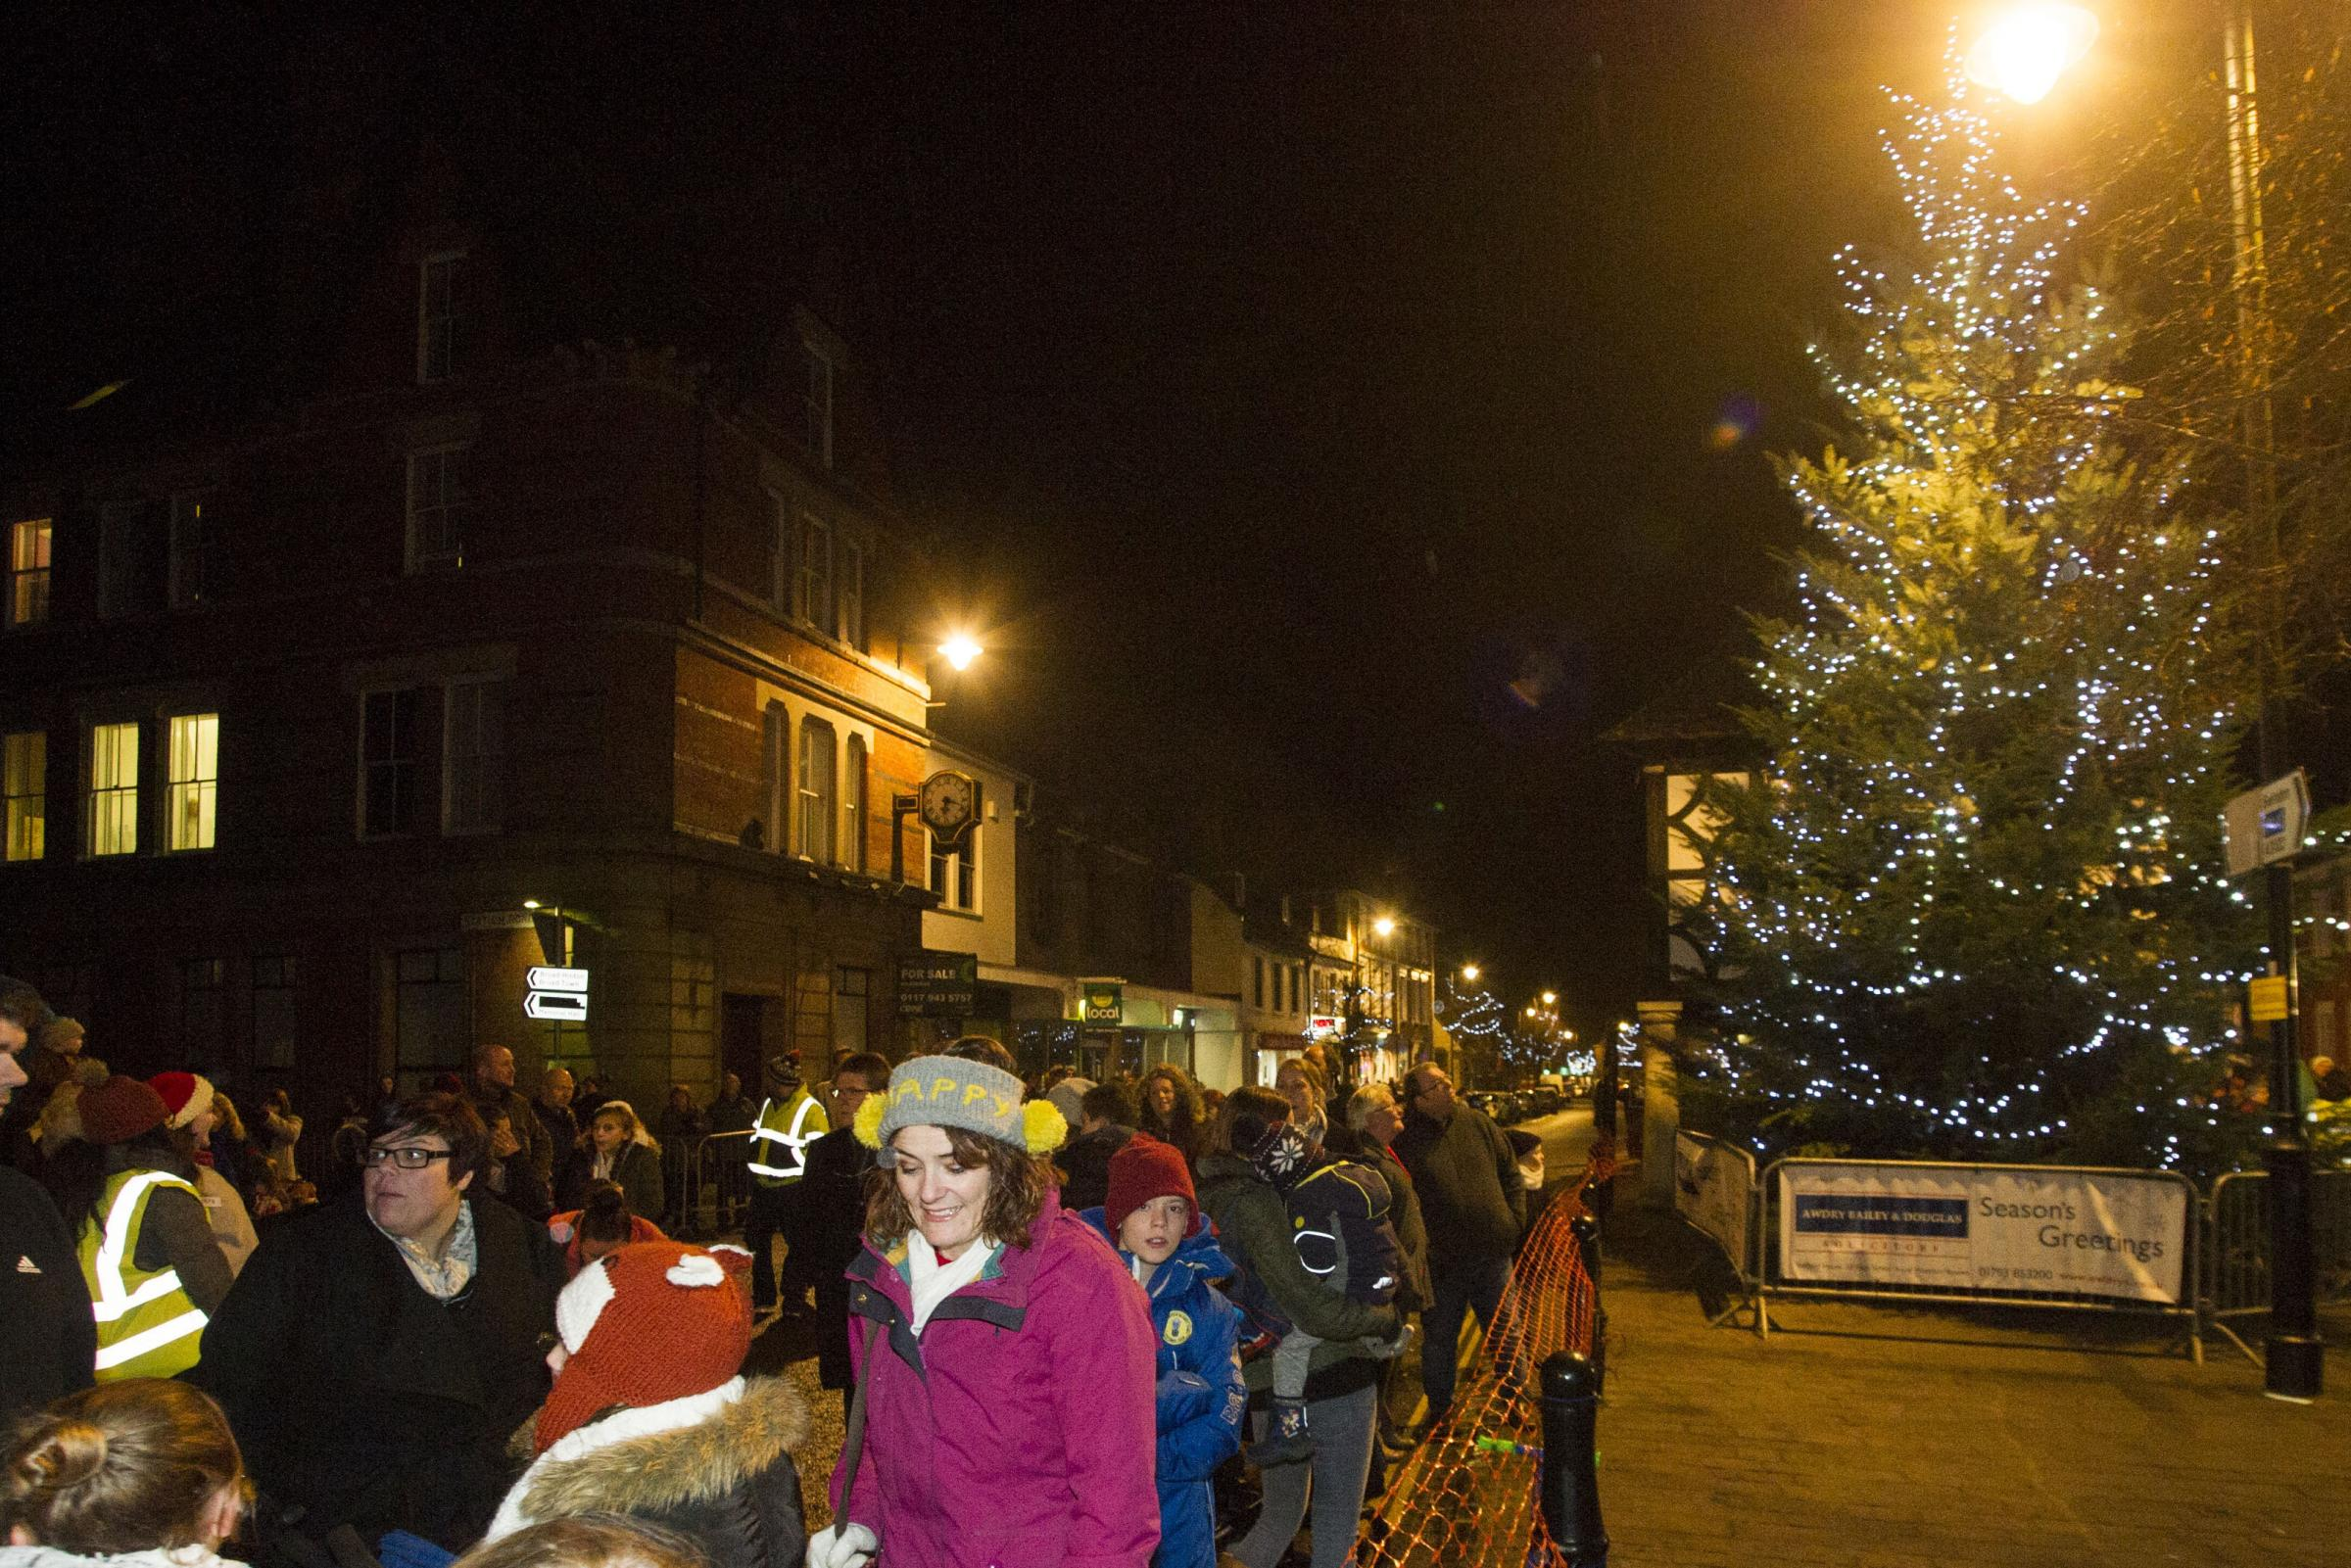 Wootton Bassett christmas lights switch on..Pic - gv.Date 3/12/16.Pic By Dave Cox.